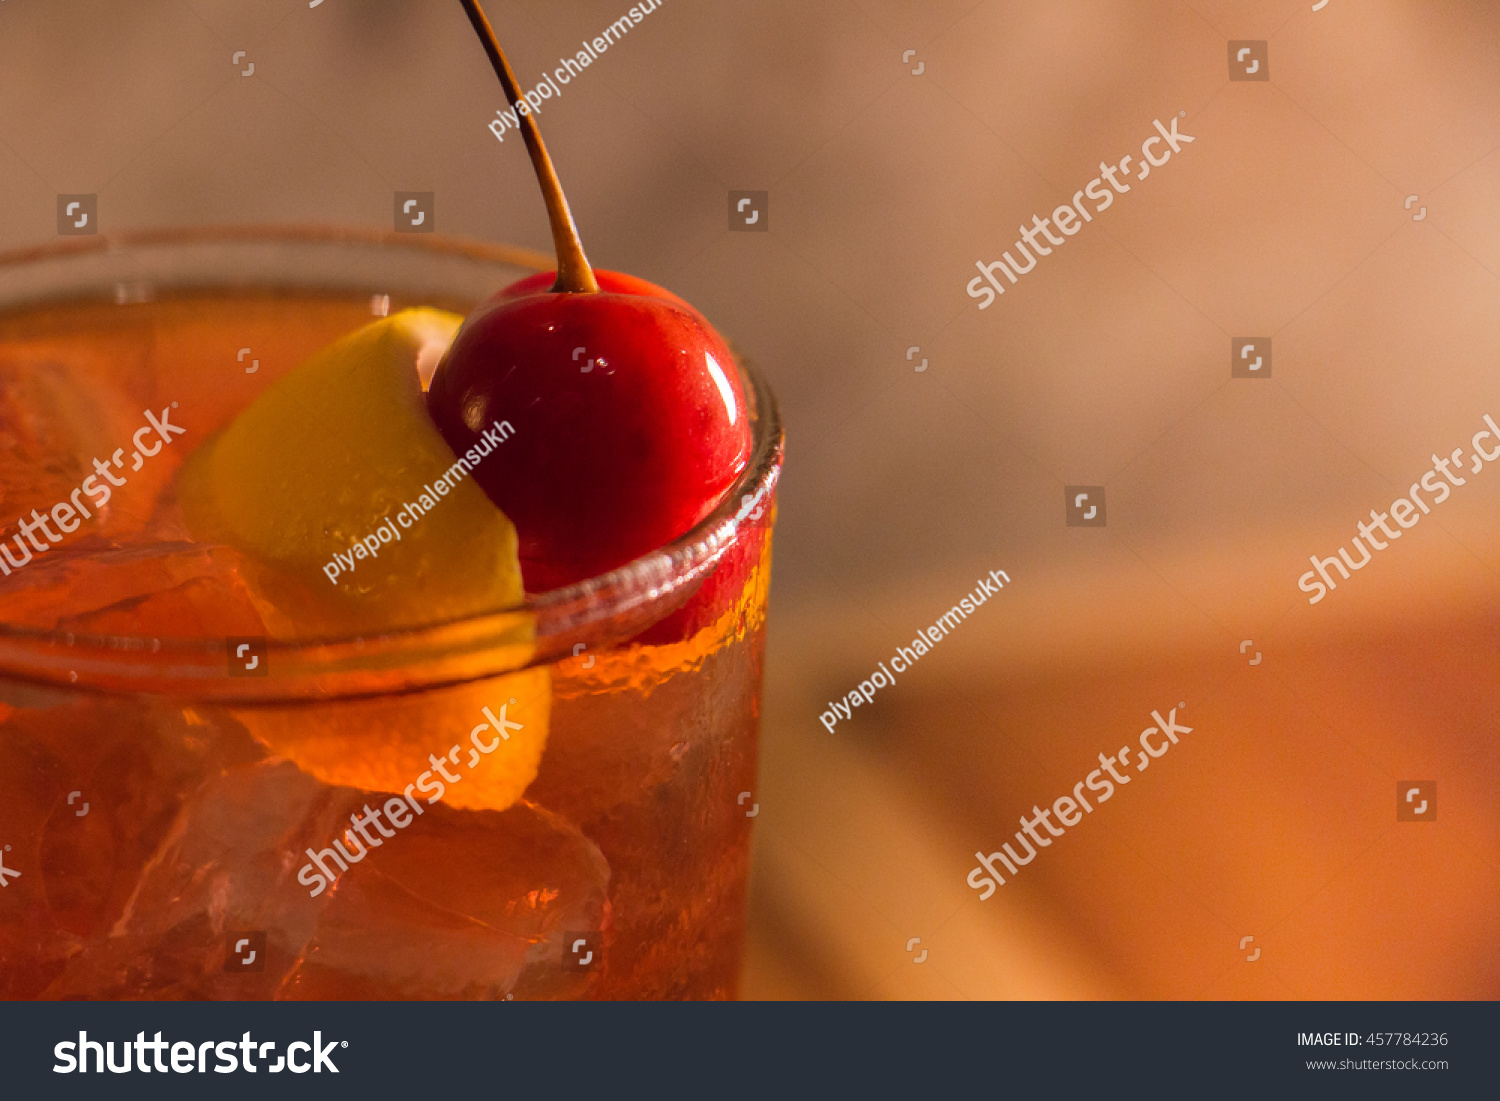 stock and cherry Download 484,114 cherry stock photos for free or amazingly low rates new users enjoy 60% off 88,323,799 stock photos online.